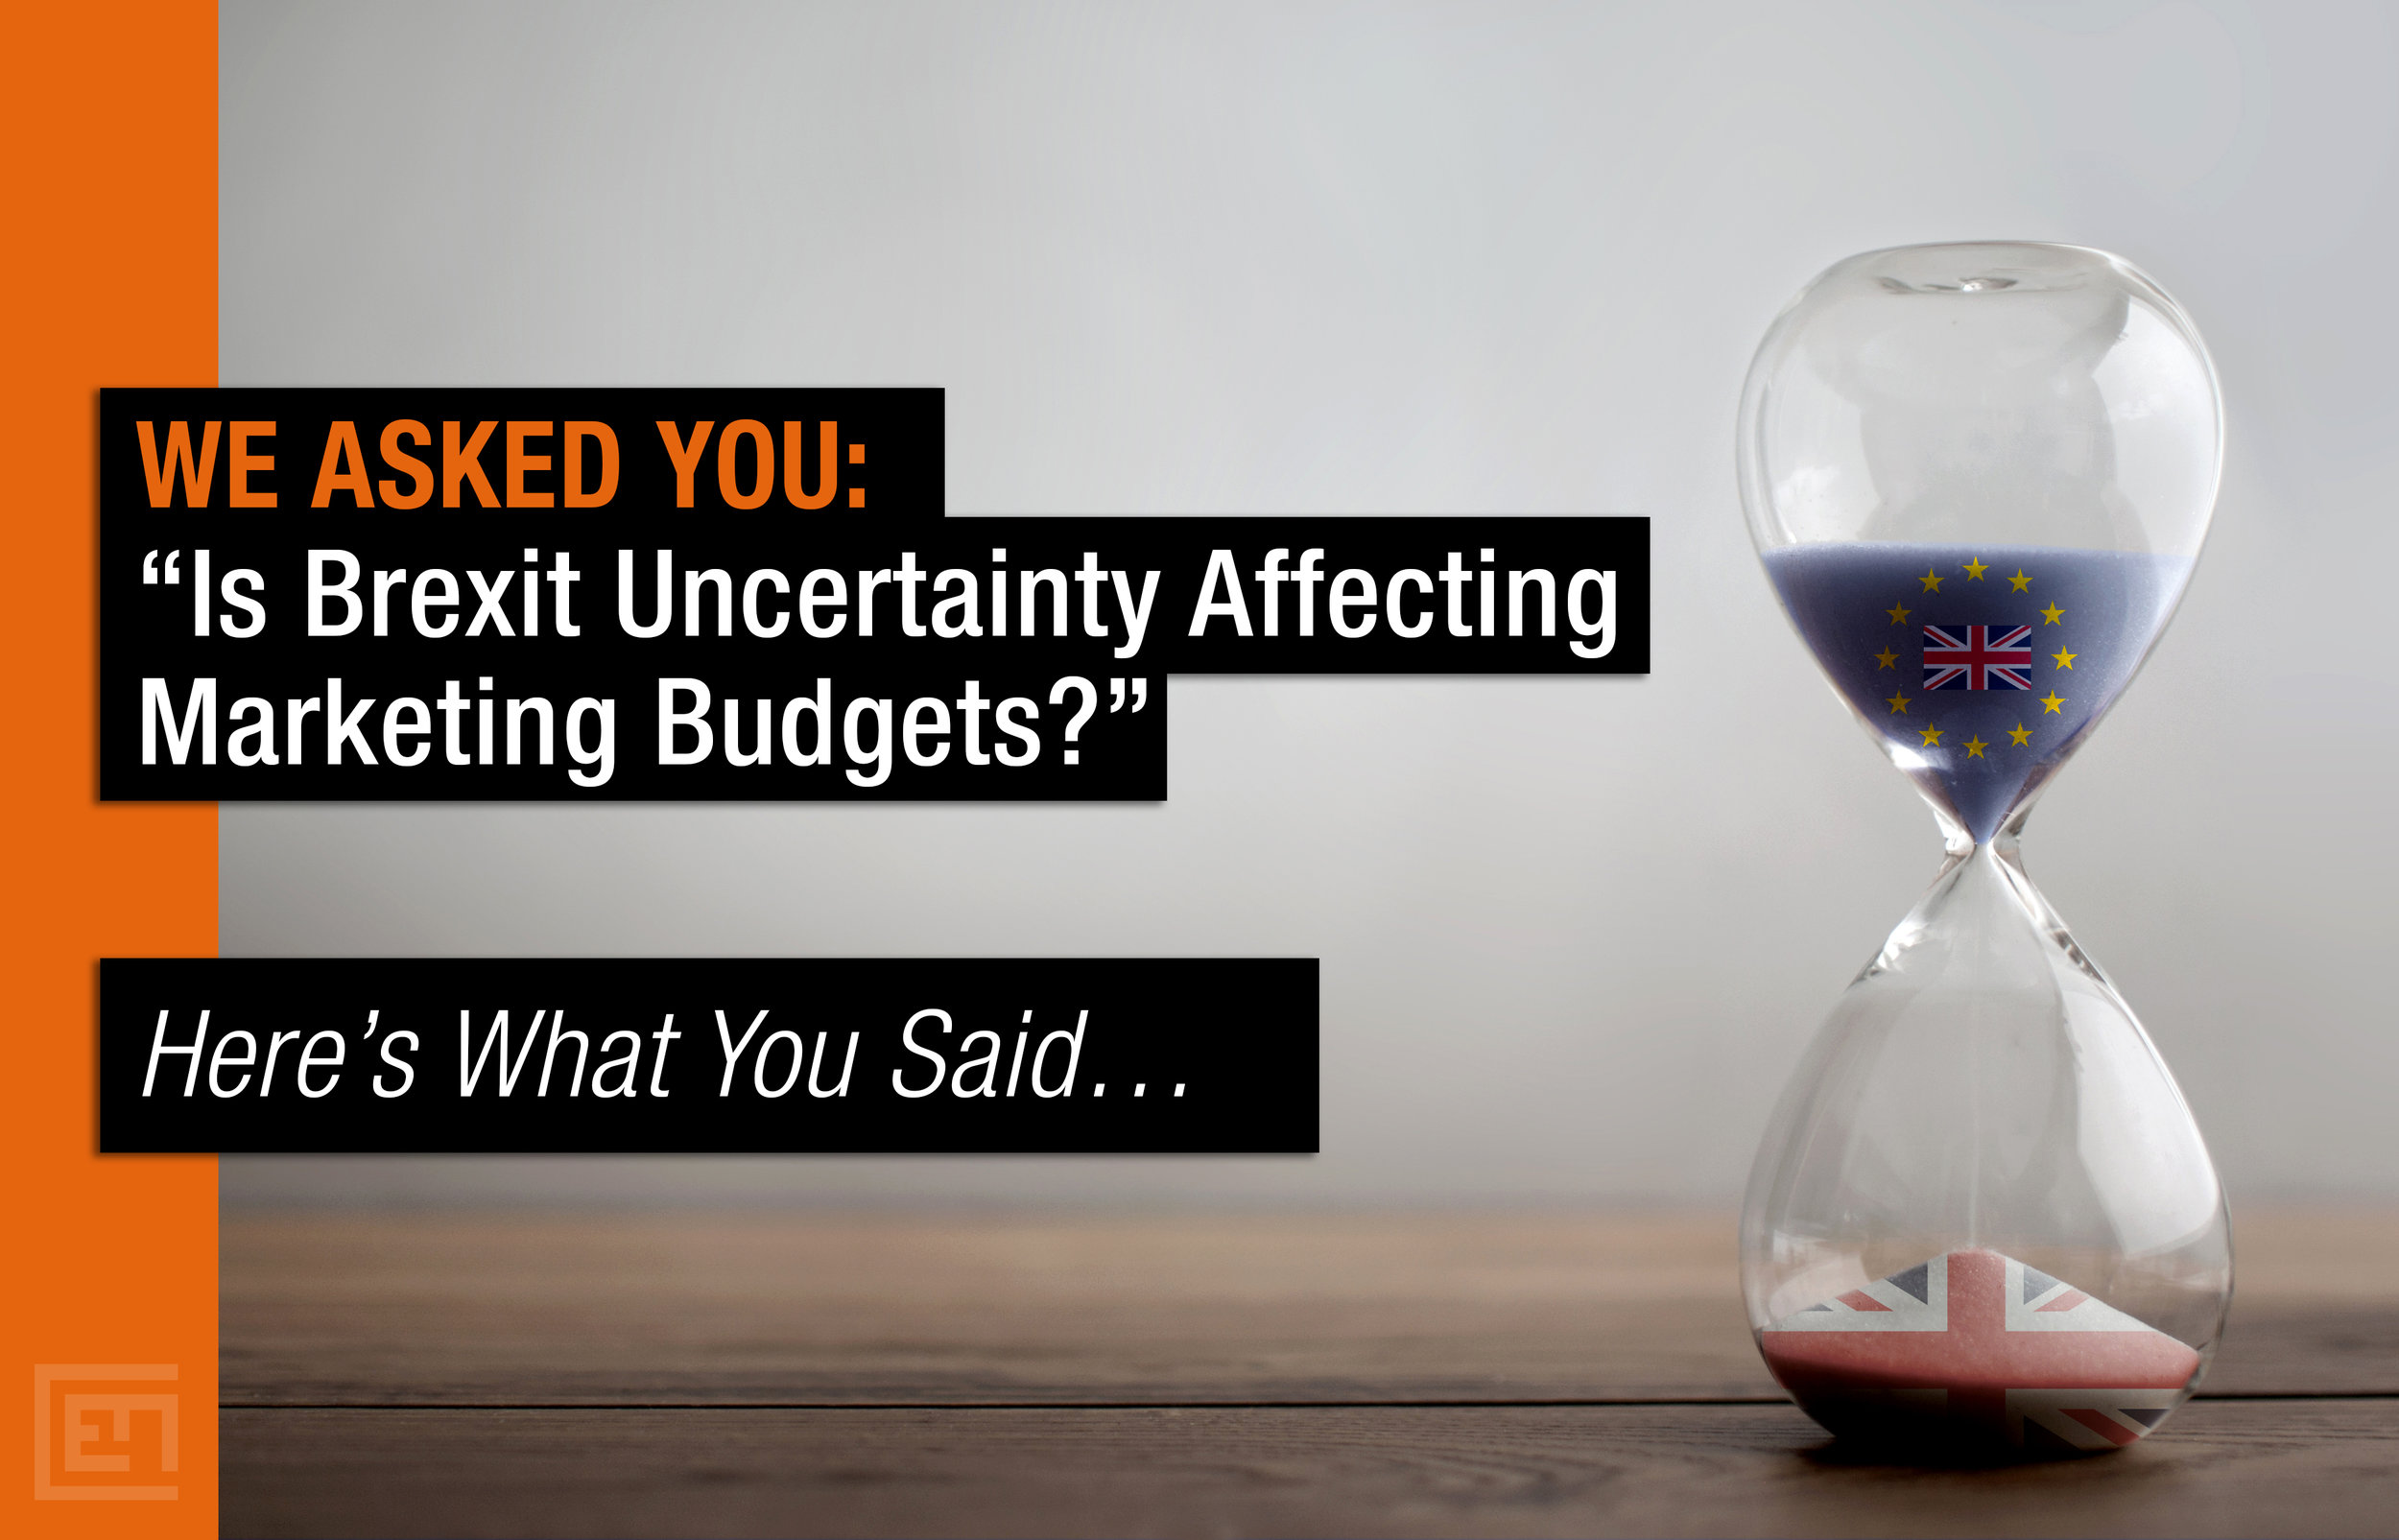 The Truth About Marketing Spending in the Construction Industry - CME did our own industry survey to find out whether construction  companies really are concerned about Brexit and whether it's affecting their marketing budgets and decisions. The results might surprise you.Read More